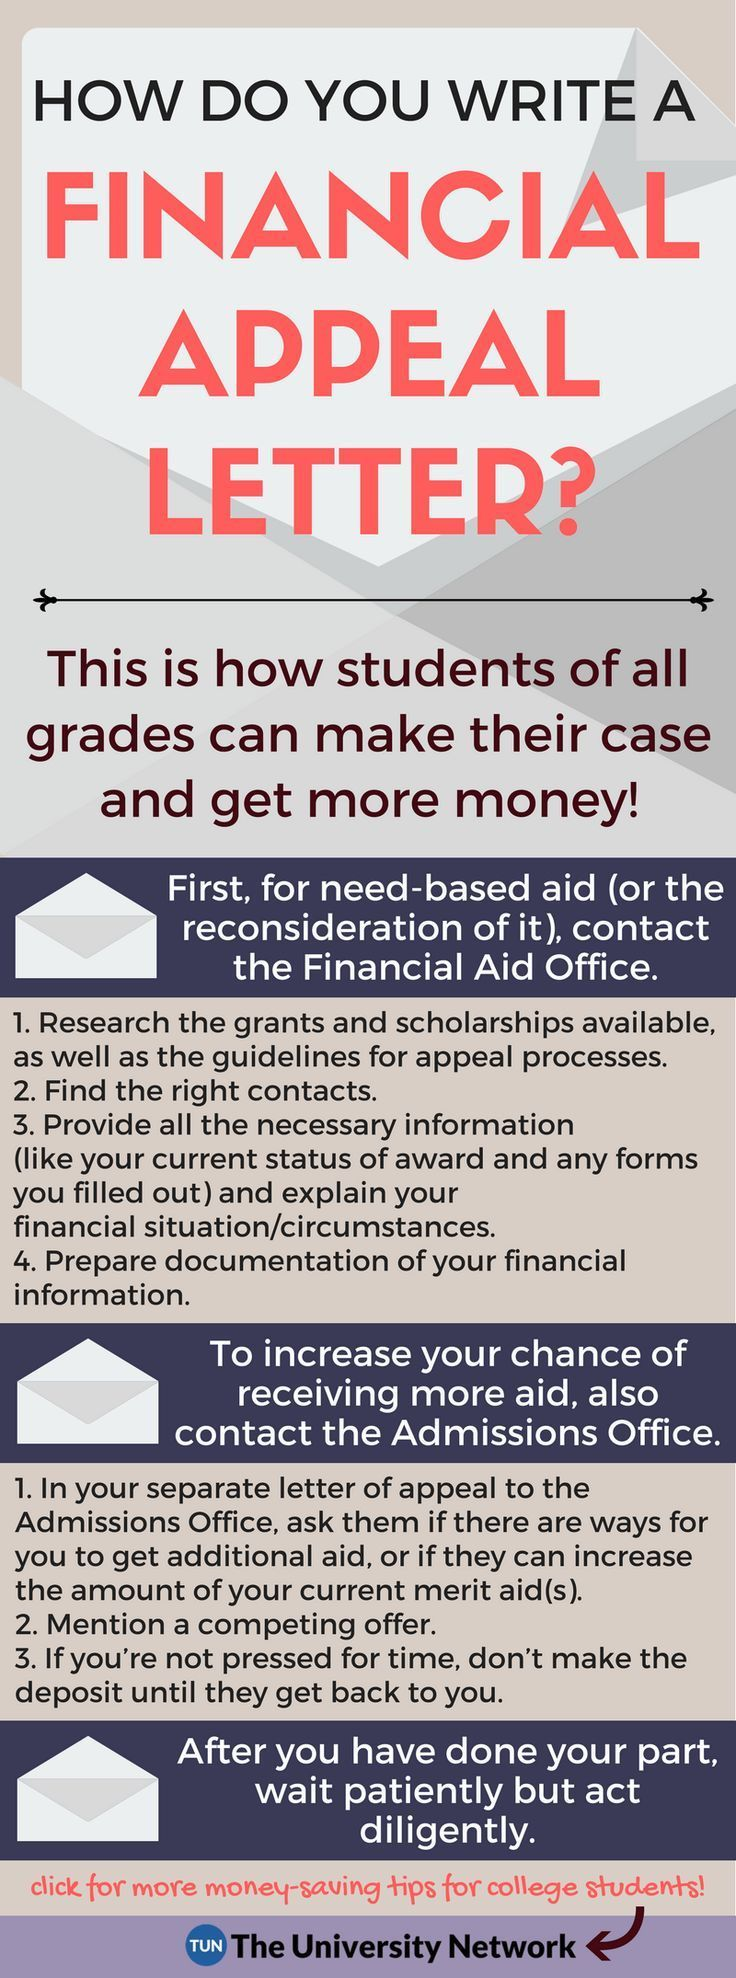 Acceptance letters come with a price tag. Learn how to write a financial appeal letter to get more money for college!